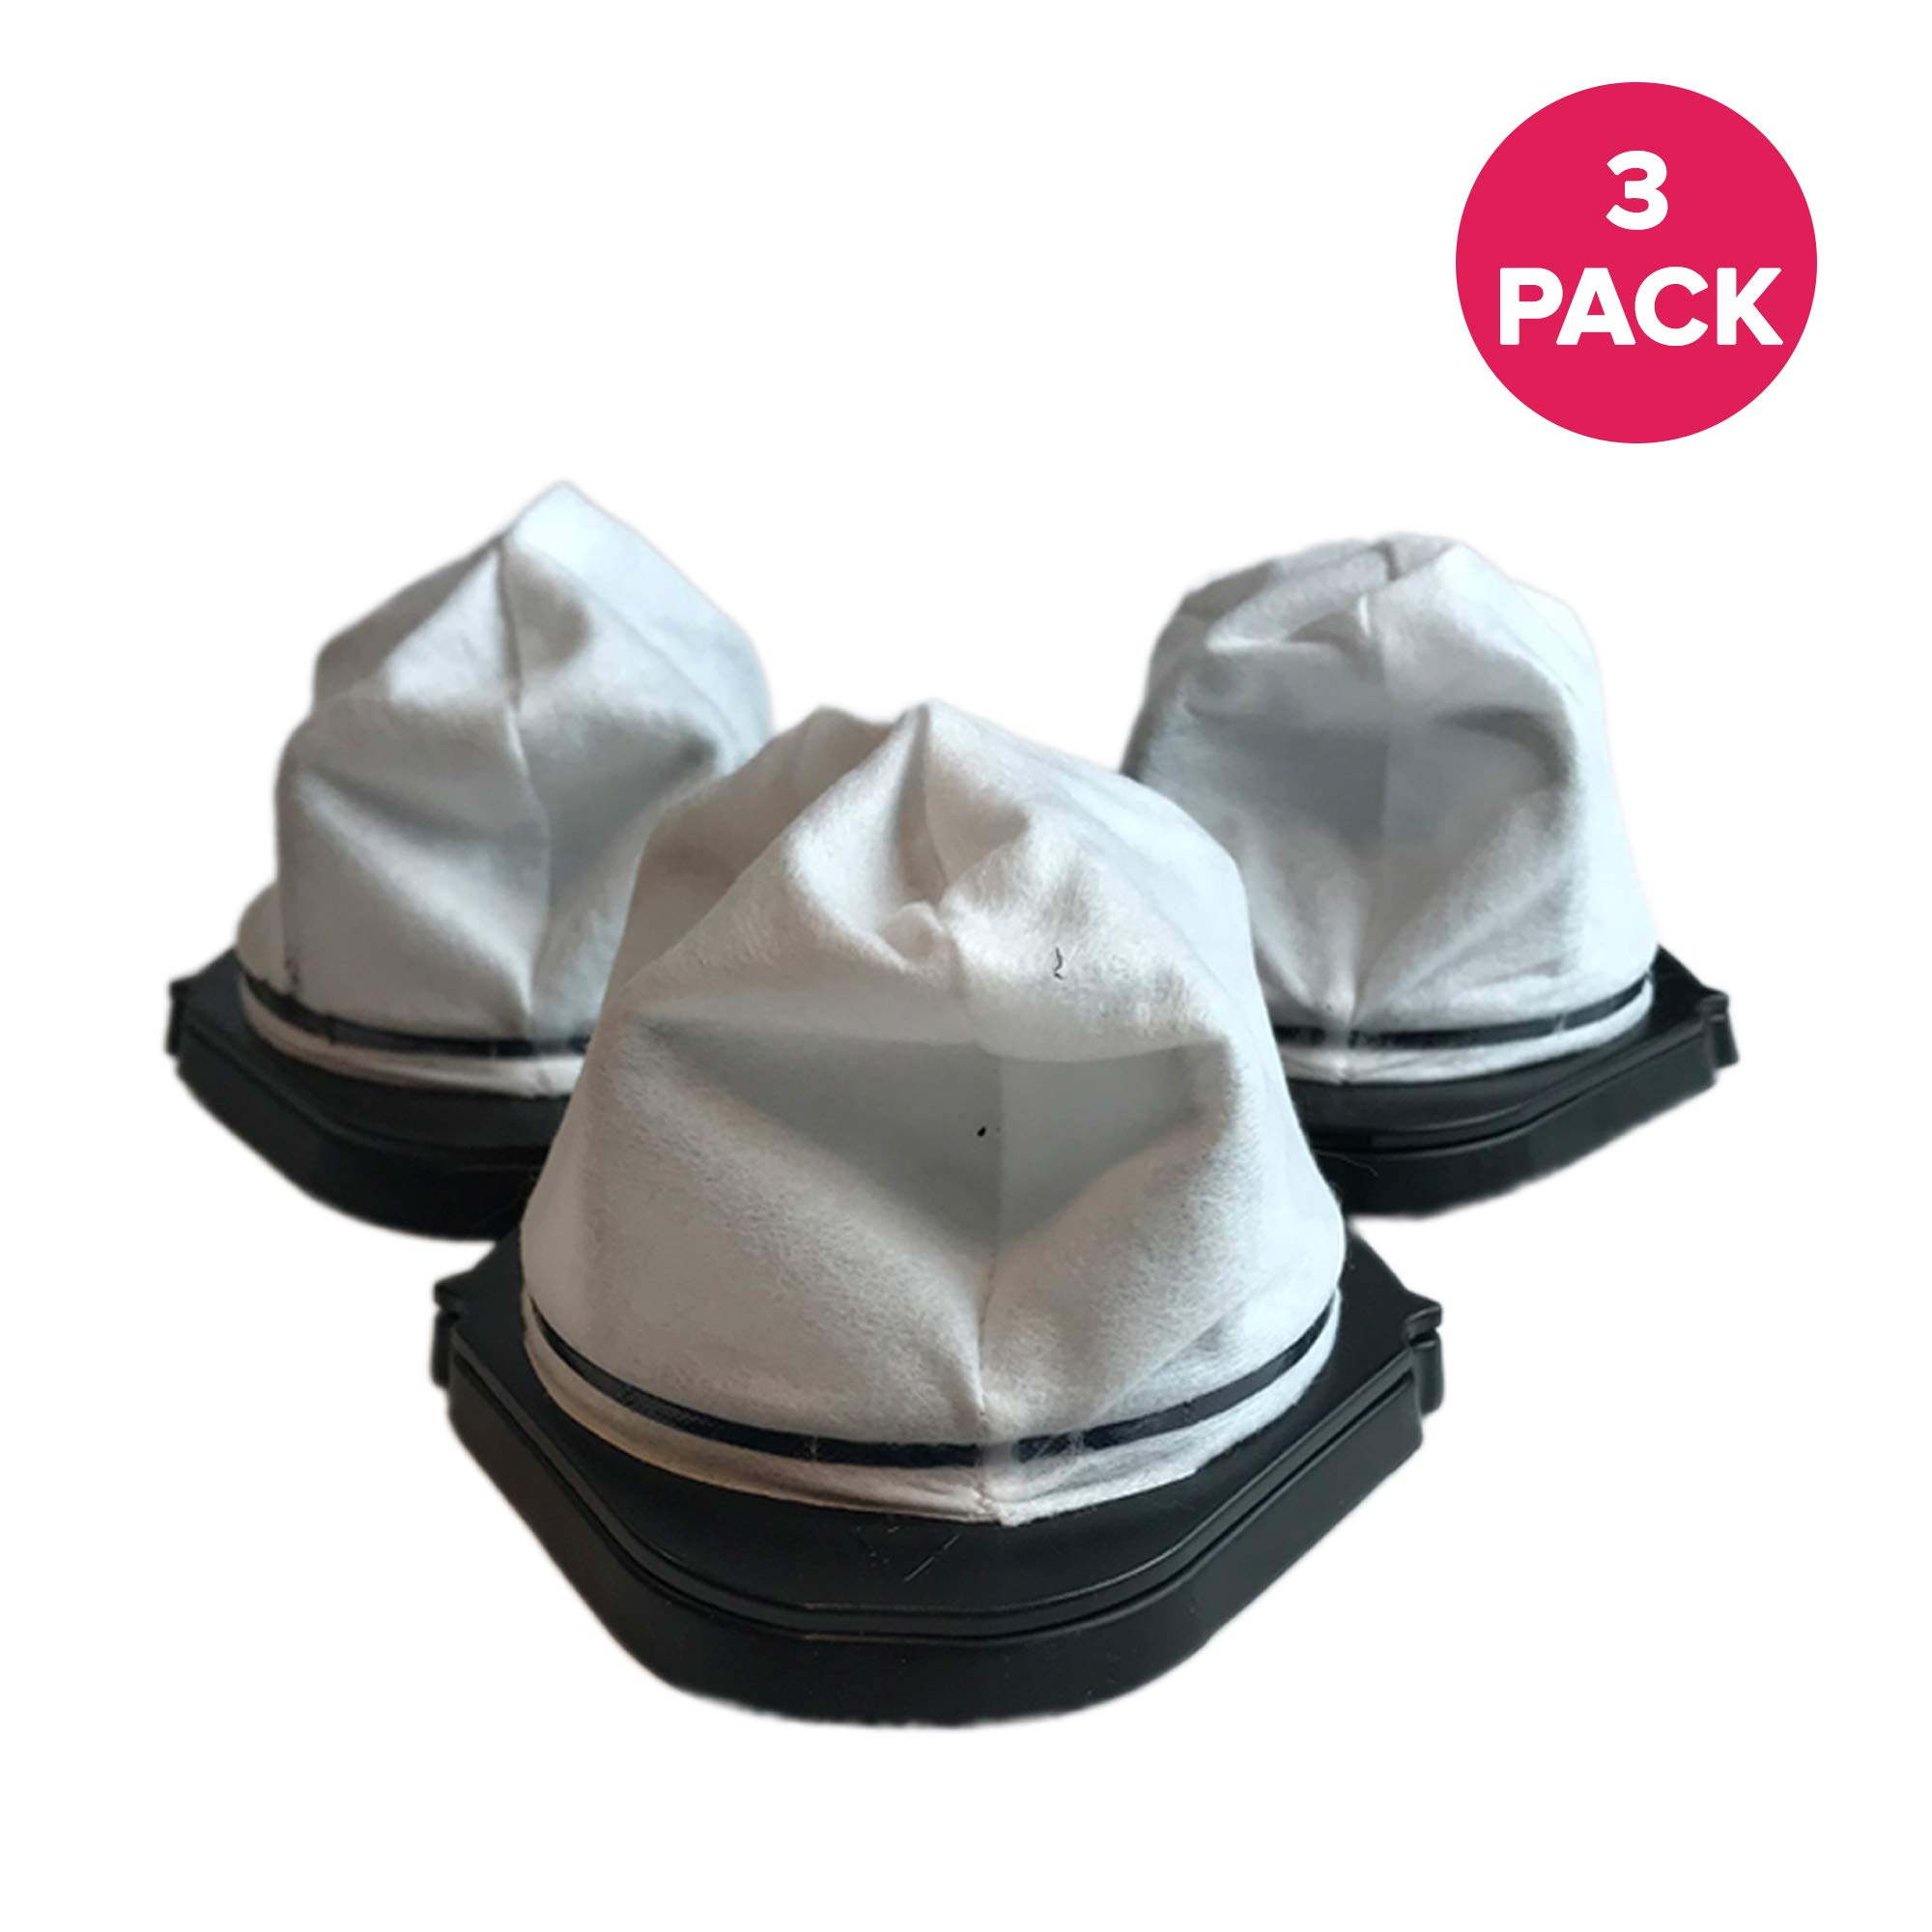 Crucial Vacuum3-Piece Dust Cup Filters for Shark Hand Vac Models by Crucial Vacuum